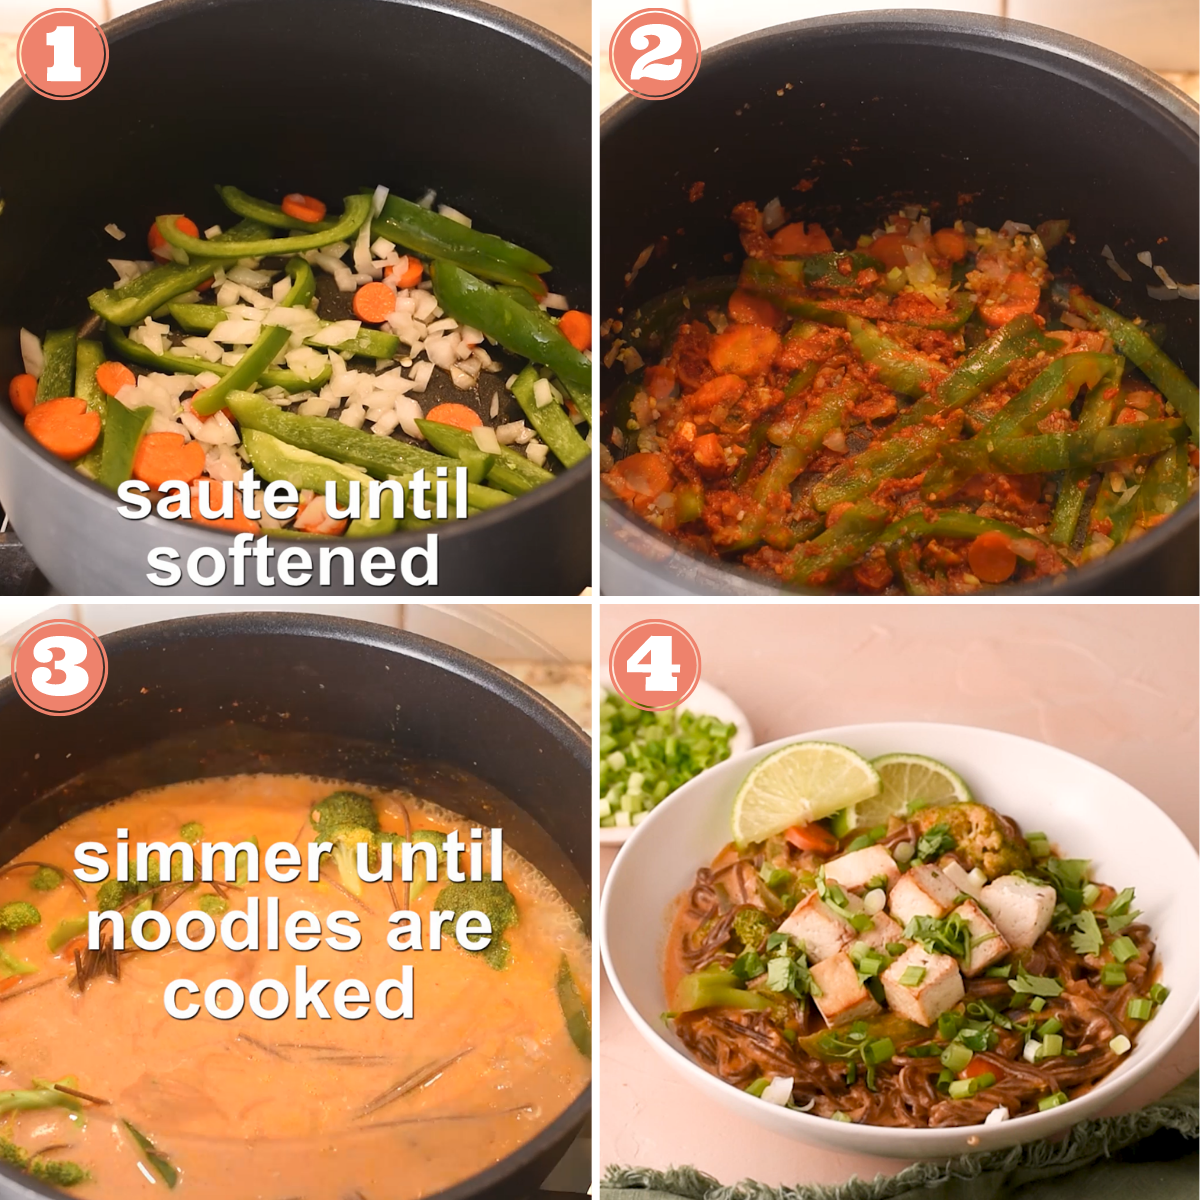 Steps 1 through 4 to make curry noodles